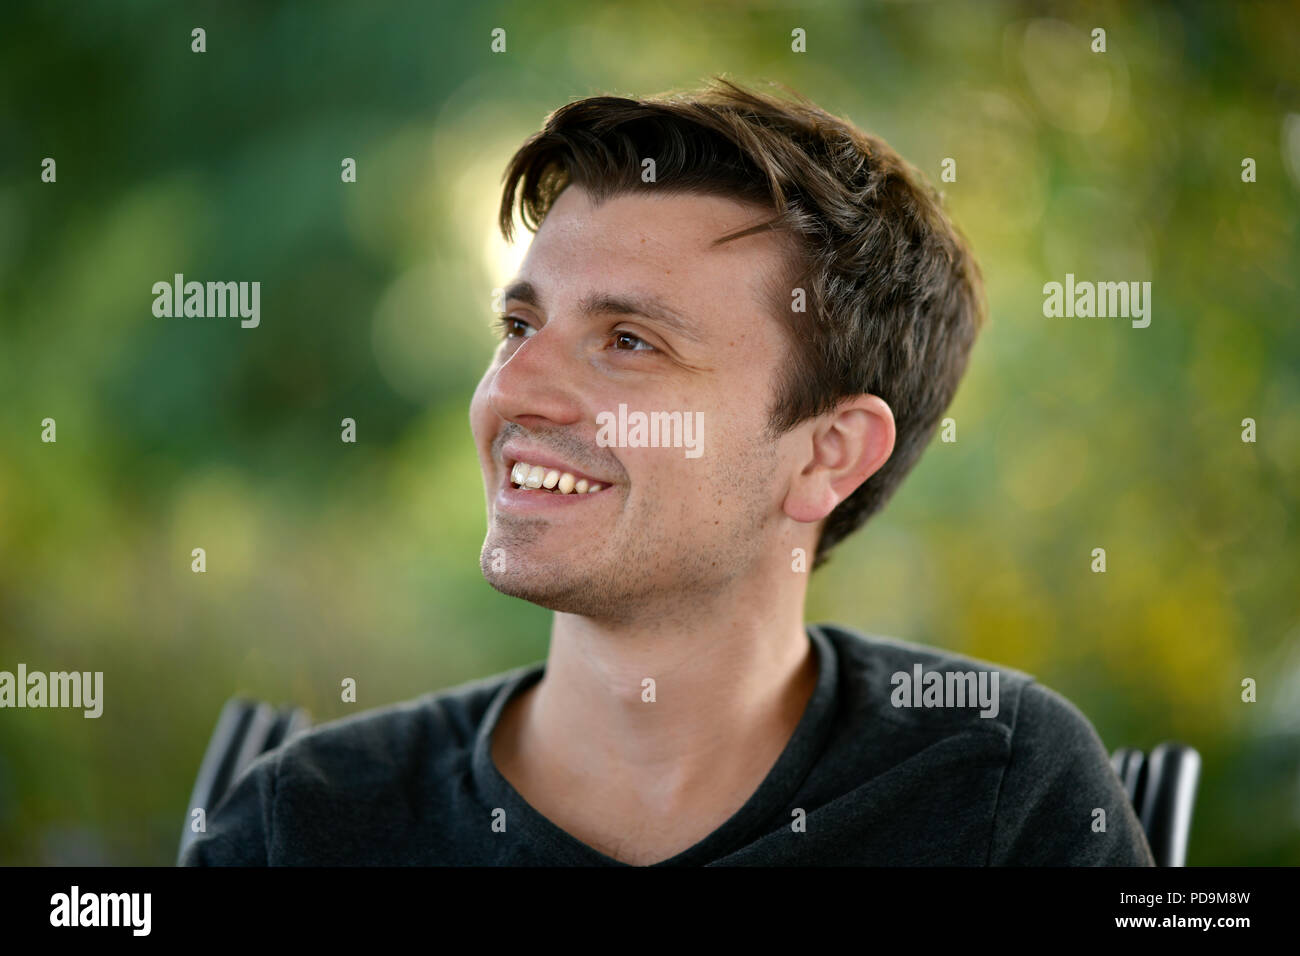 Young man, smiling, portrait, Germany - Stock Image